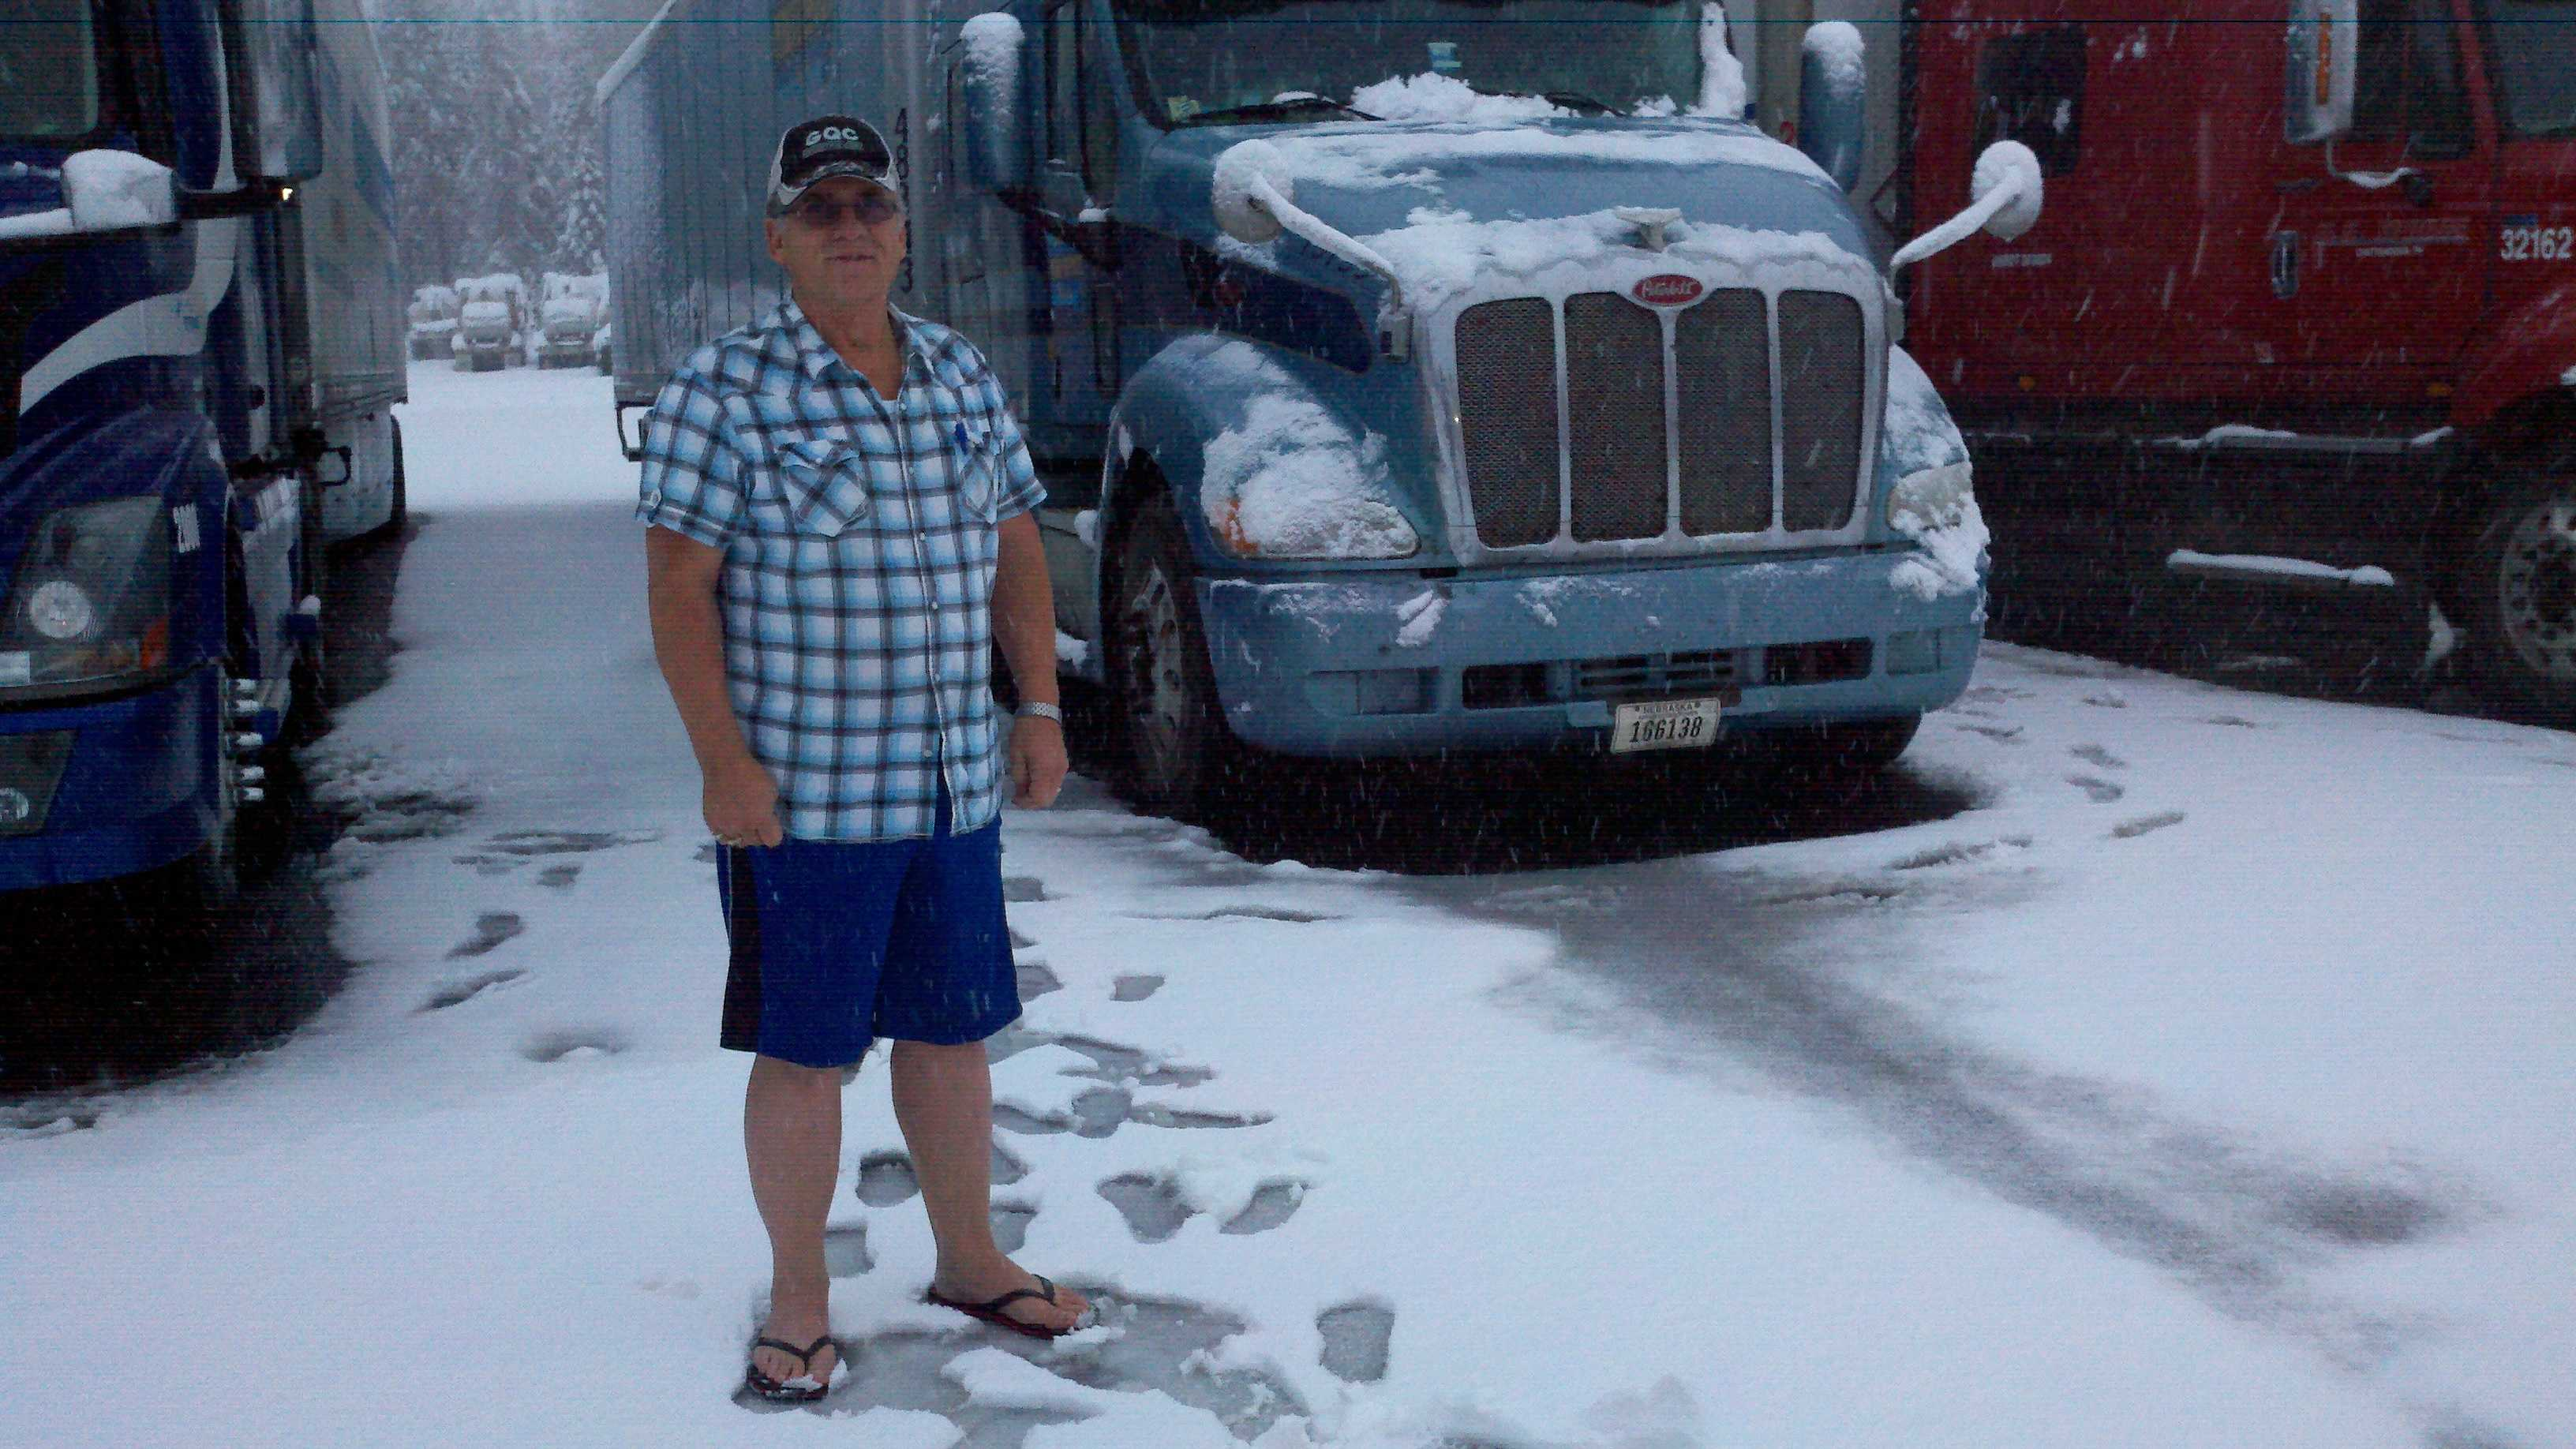 Shorts, fli-flops, snow: No problem